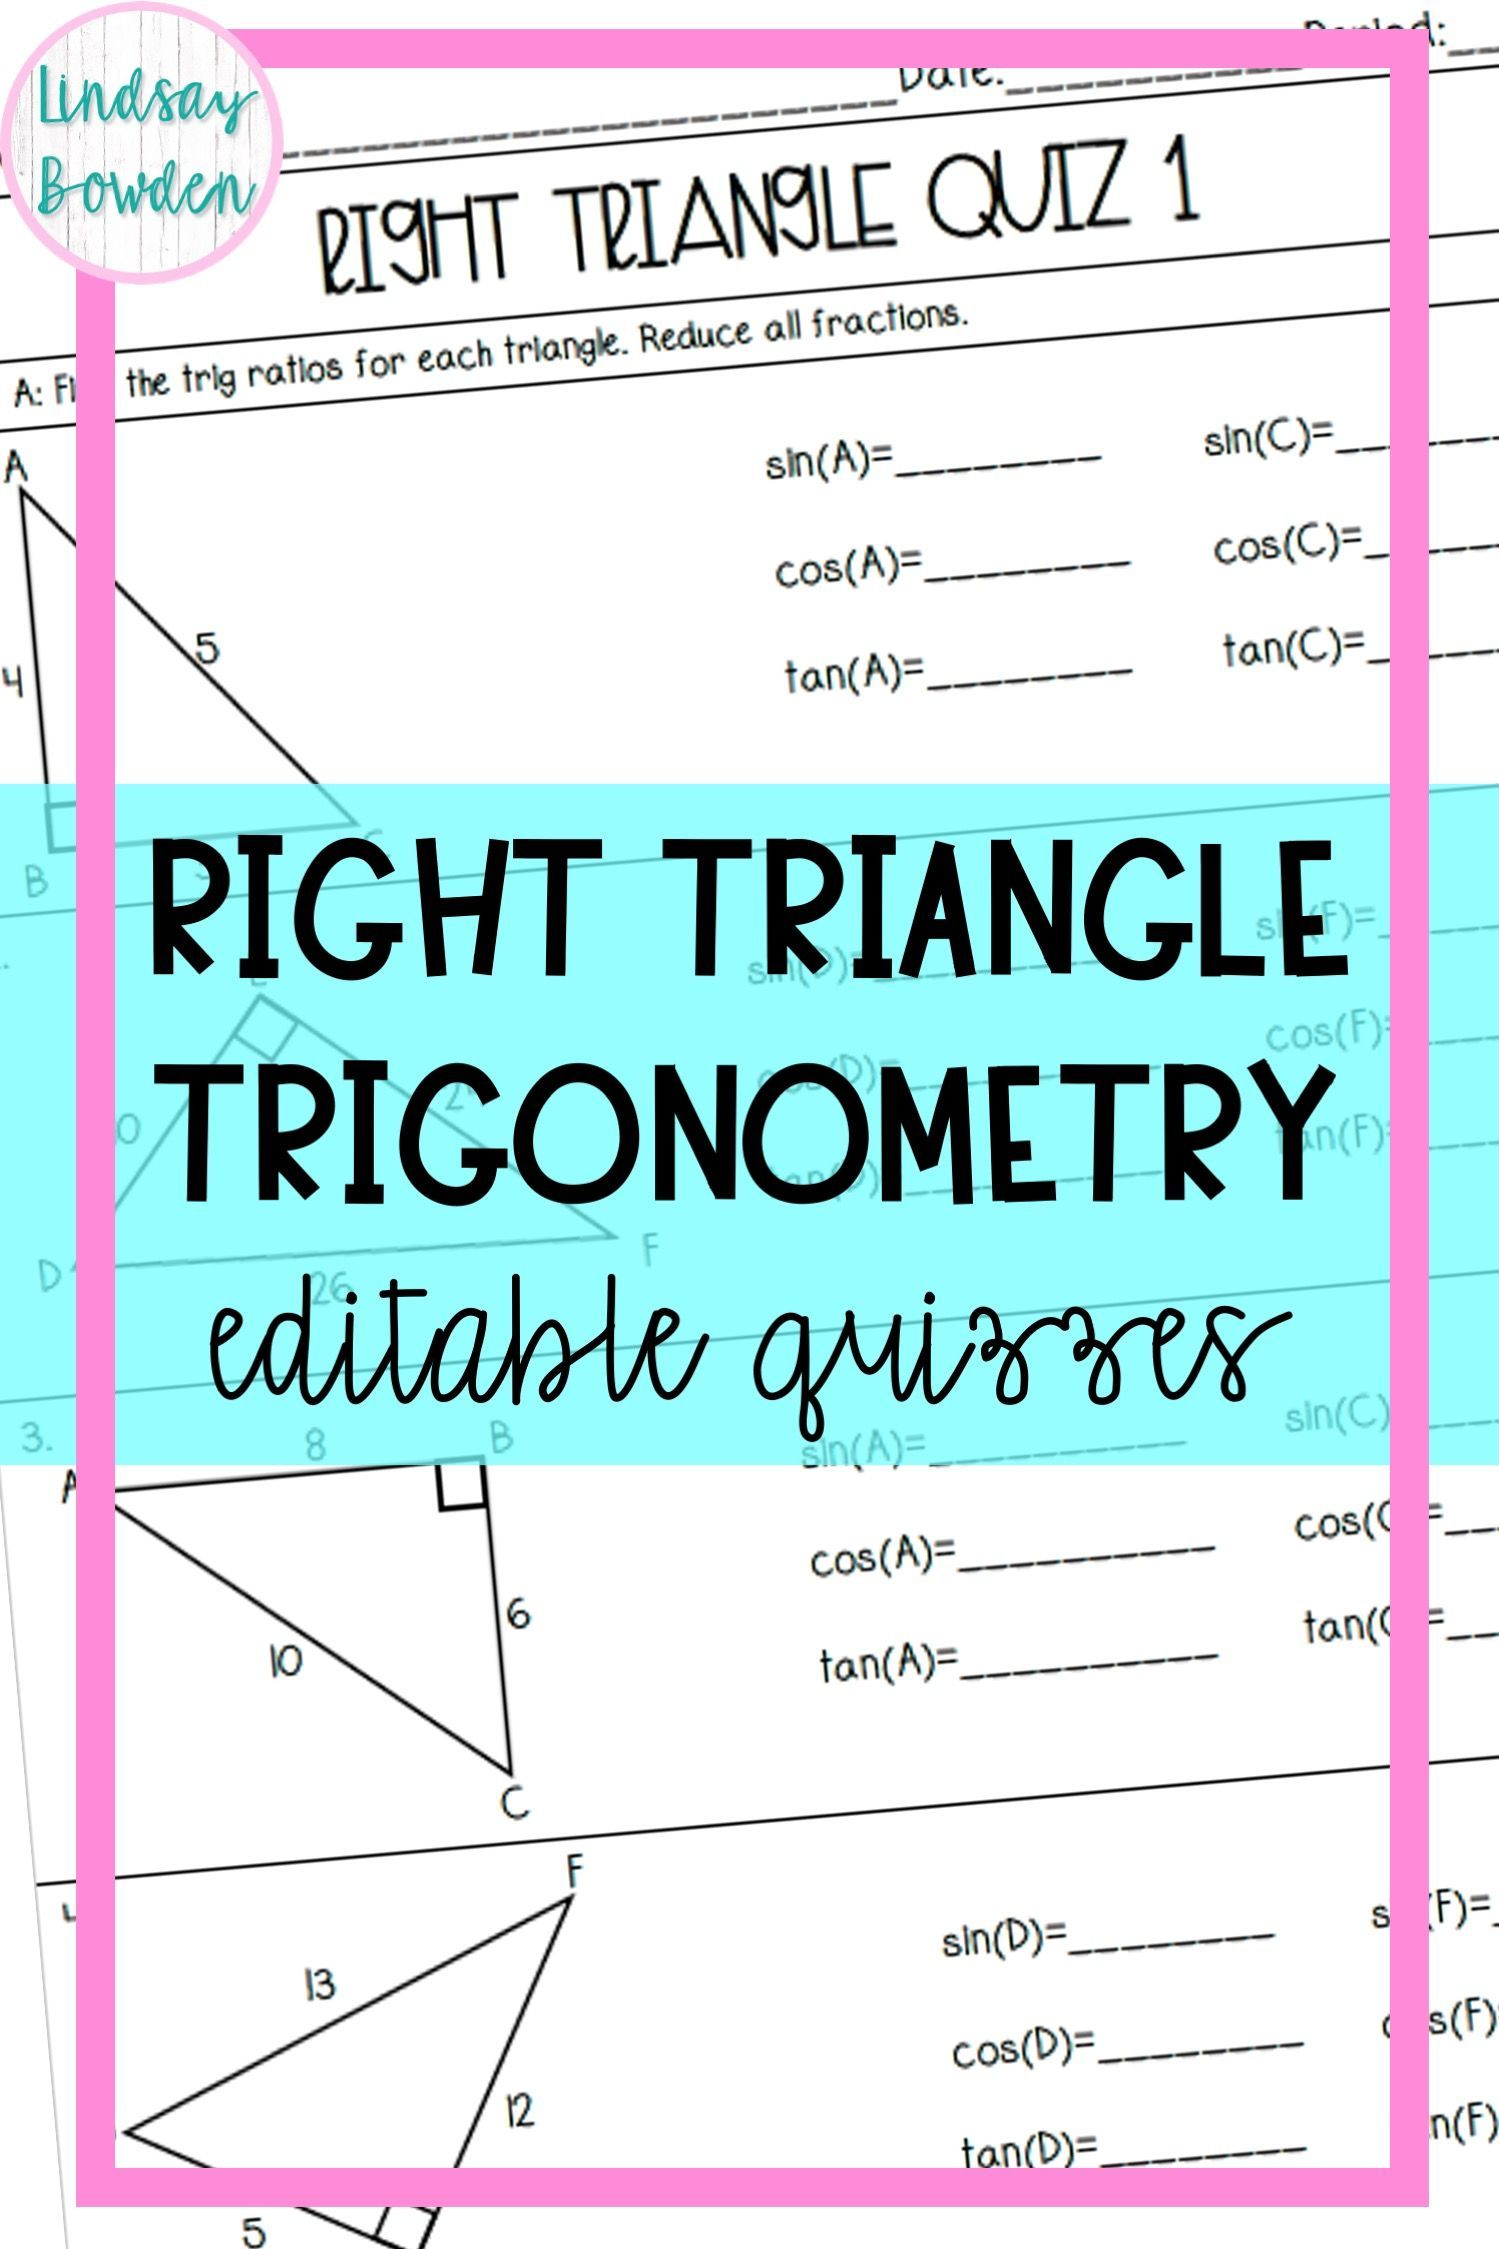 Right Triangle Trigonometry Quizzes In 2020 Trigonometry Word Problems Right Triangle